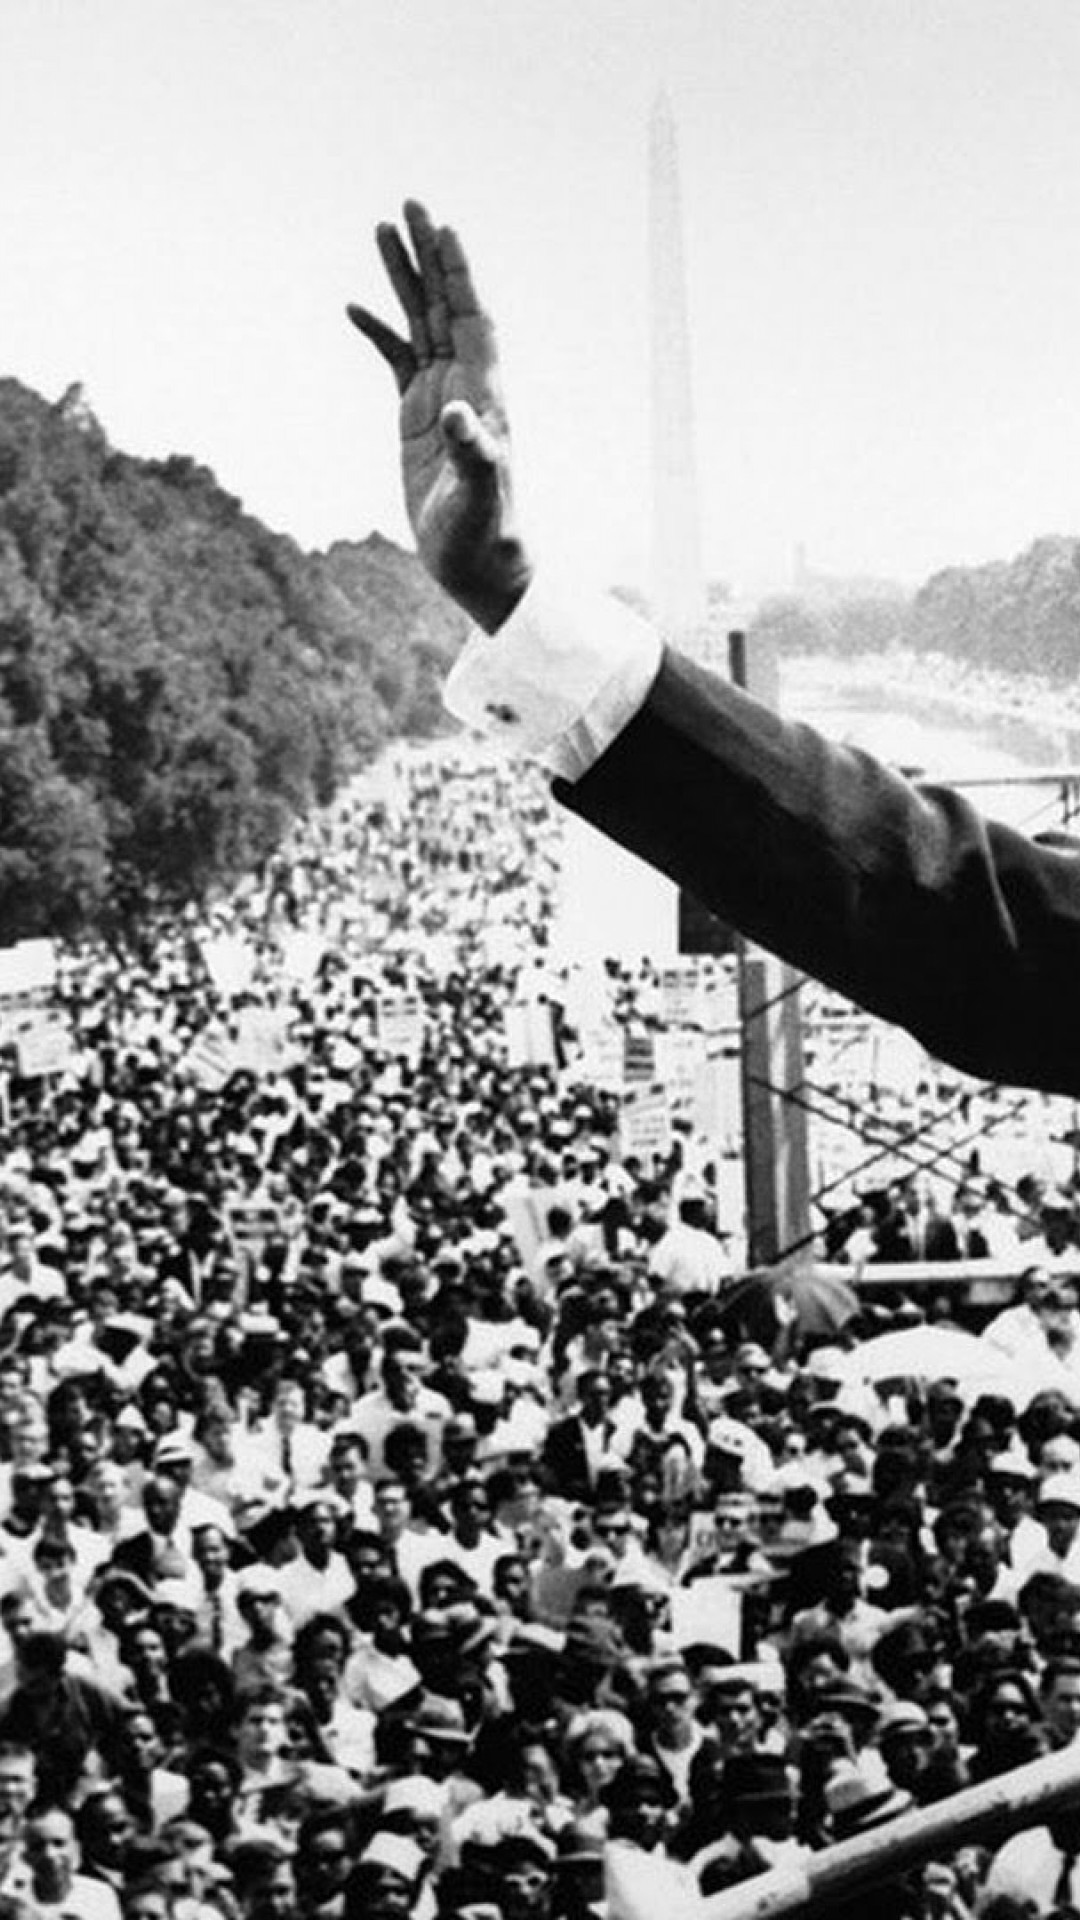 Martin Luther King Jr Hd Wallpaper For Desktop And Mobiles Iphone 6